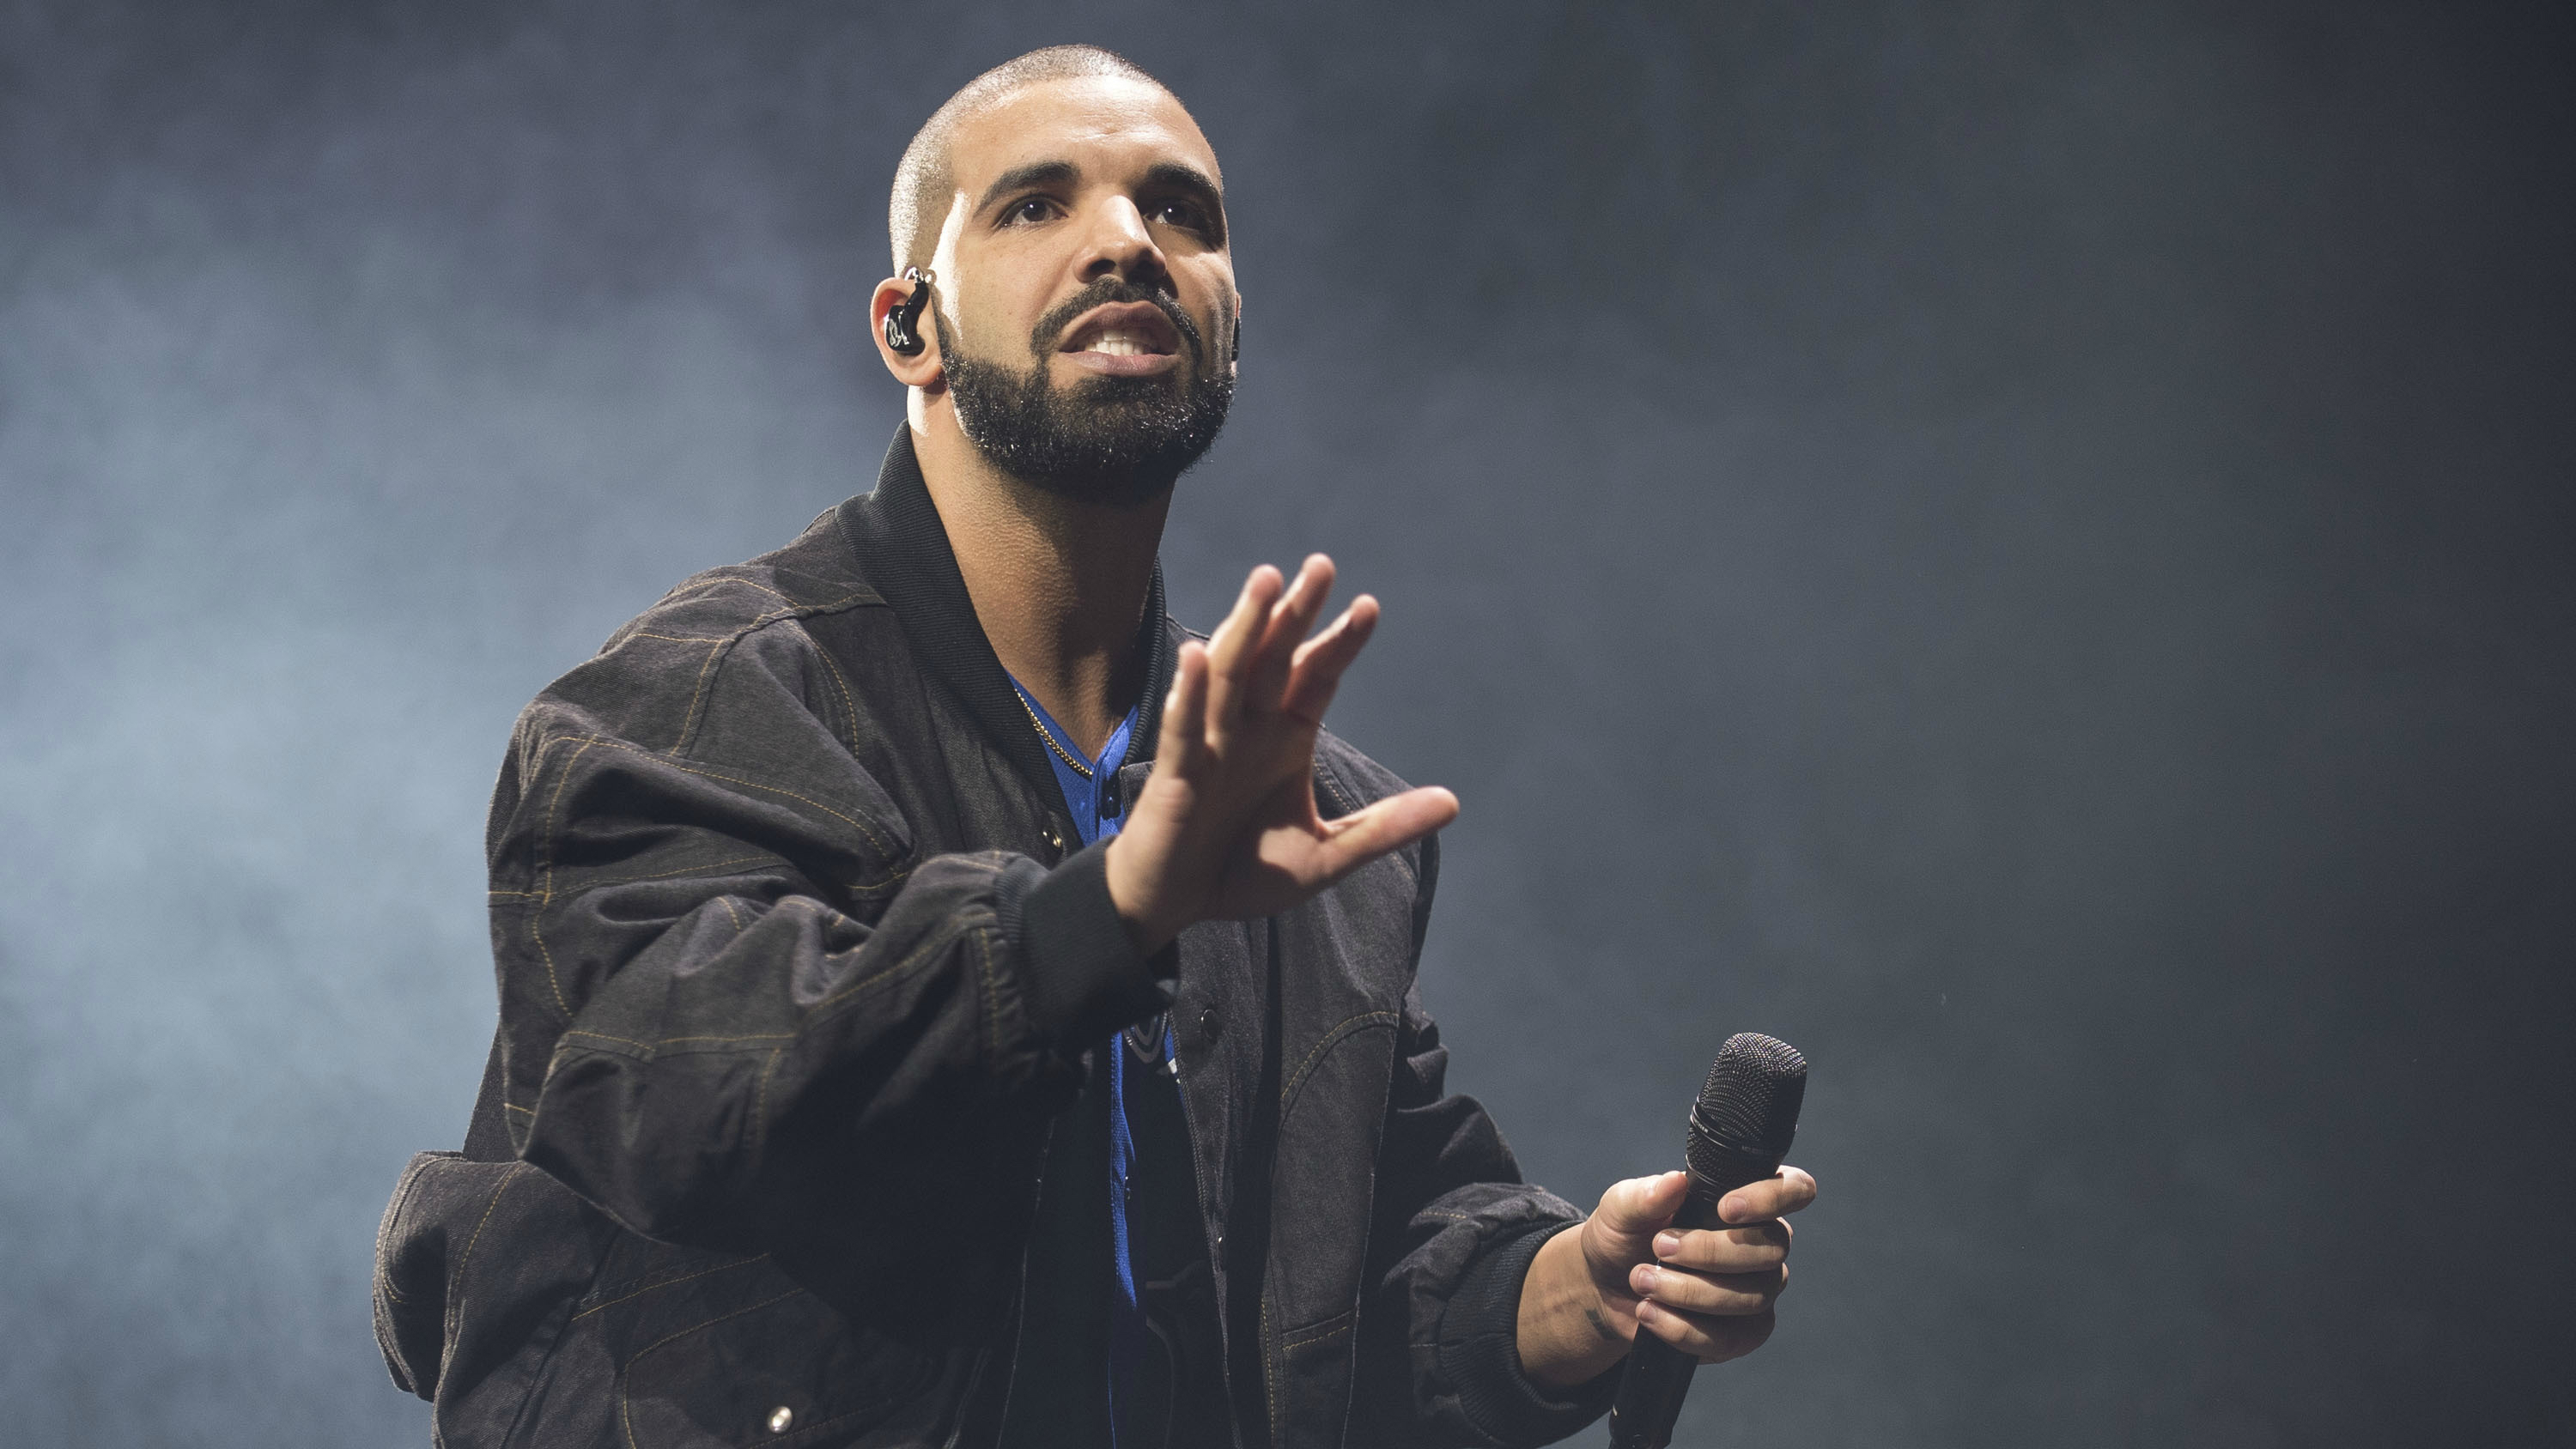 The musician Drake playing a concert